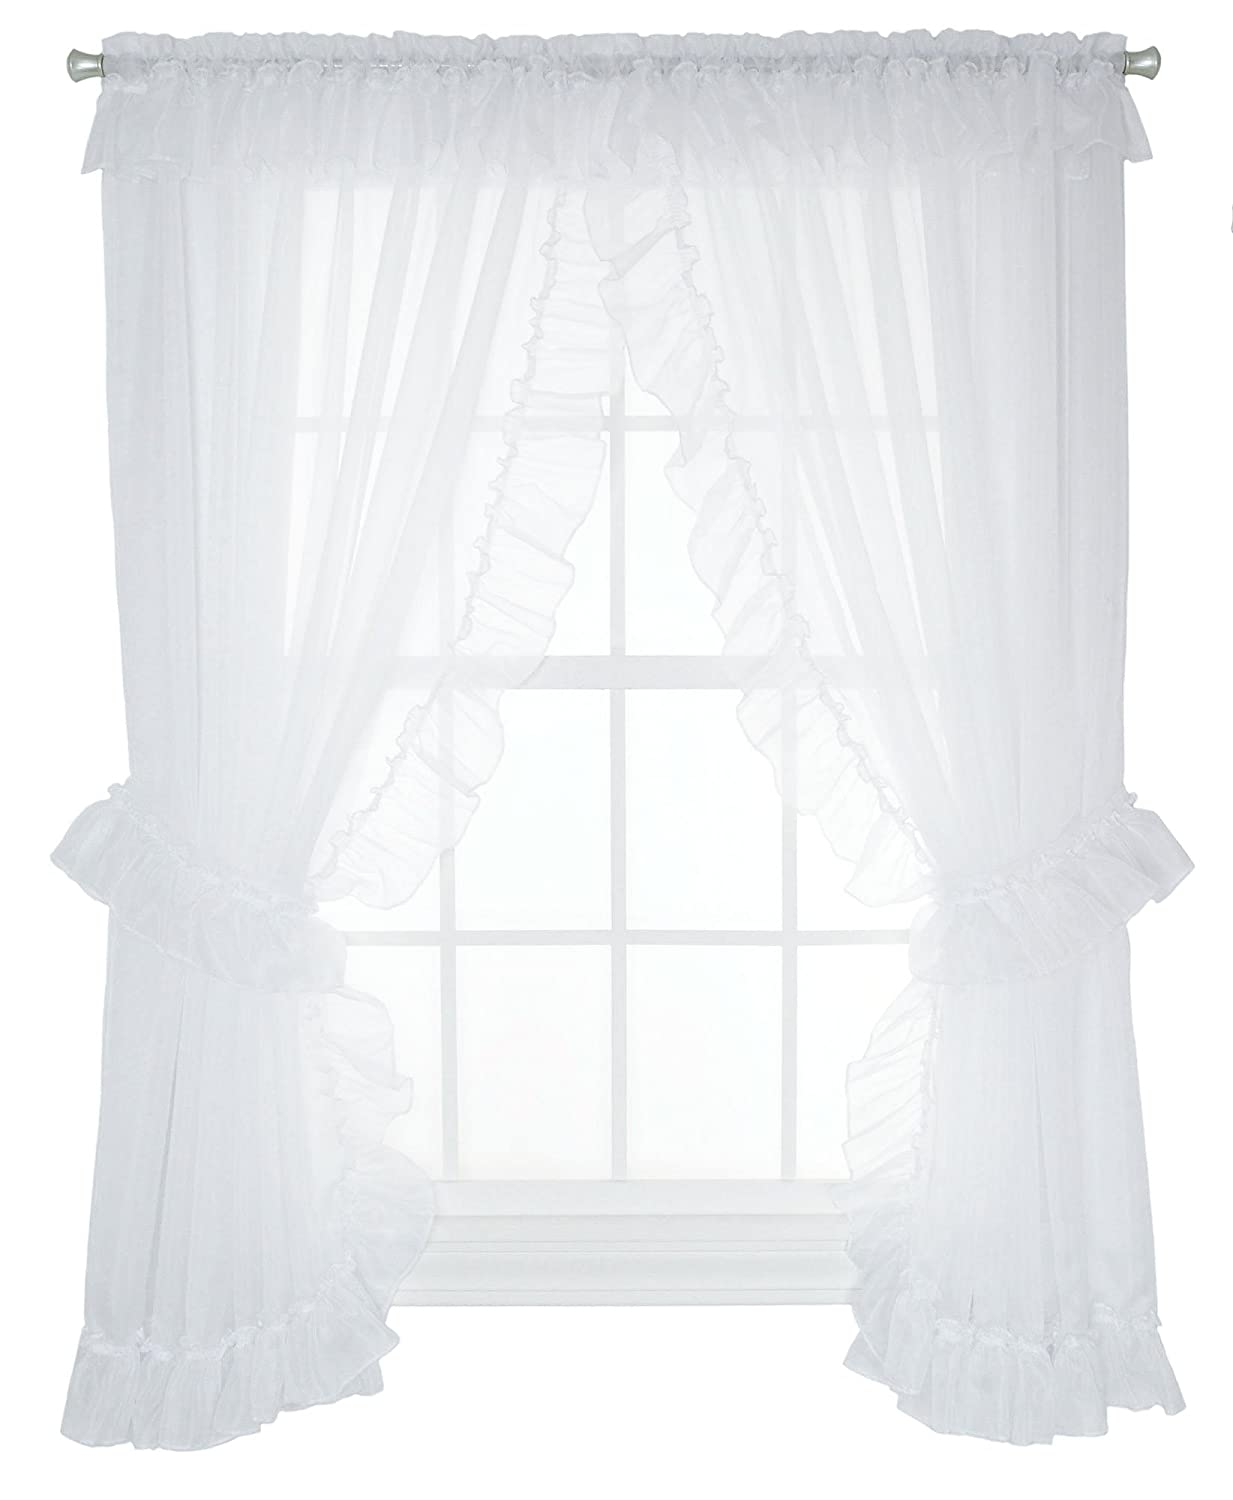 bridge sea themed inch polyester dcd room decor panel over darkening home product for curtains blackout transparent drape curt dcdirect x window